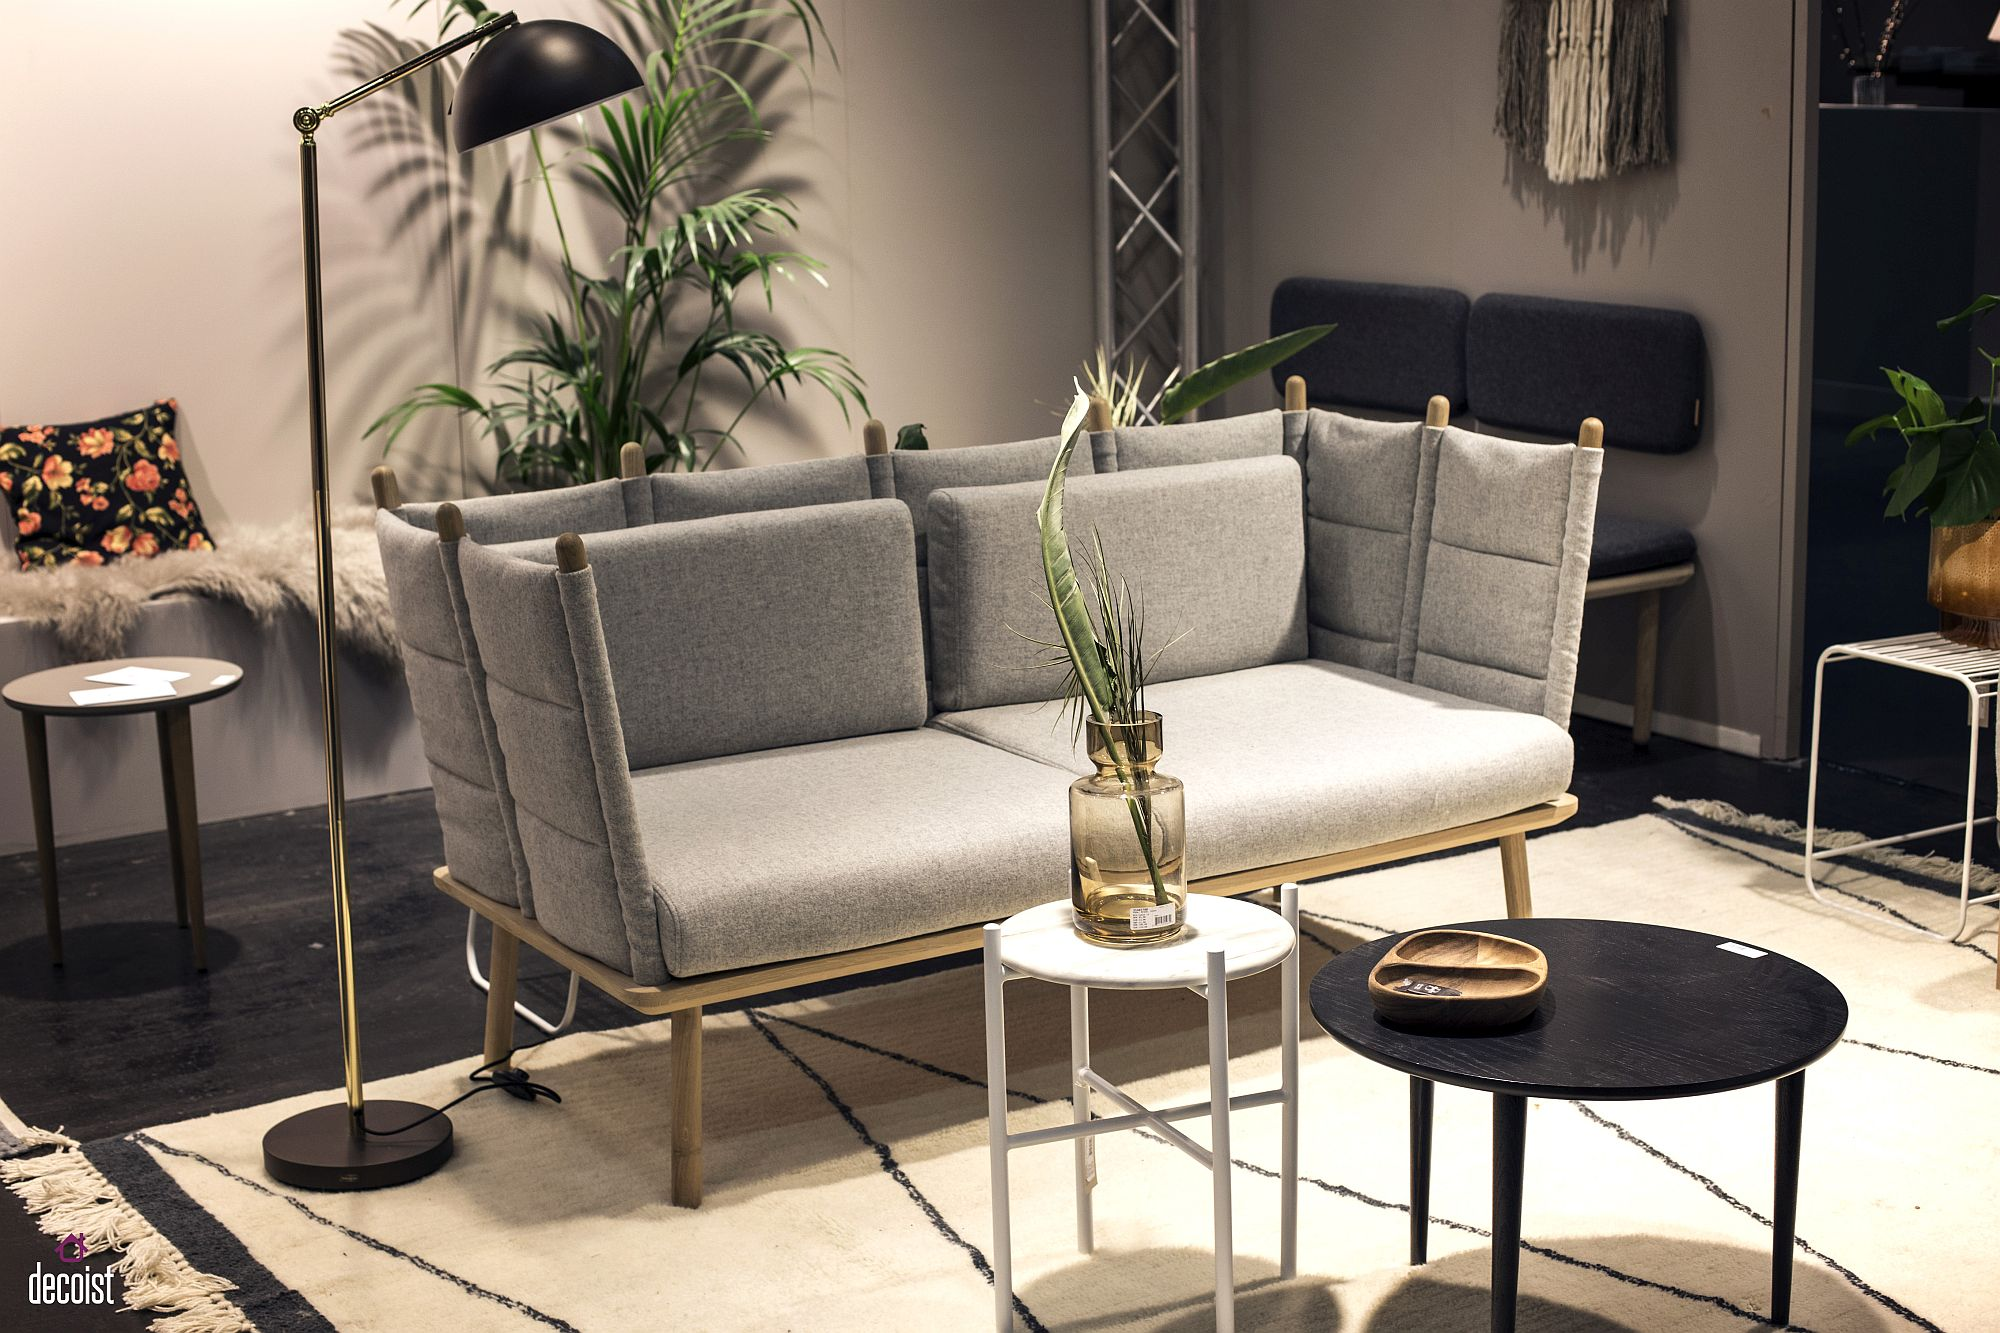 Slim floor lamp next to comfy counch with ample seating